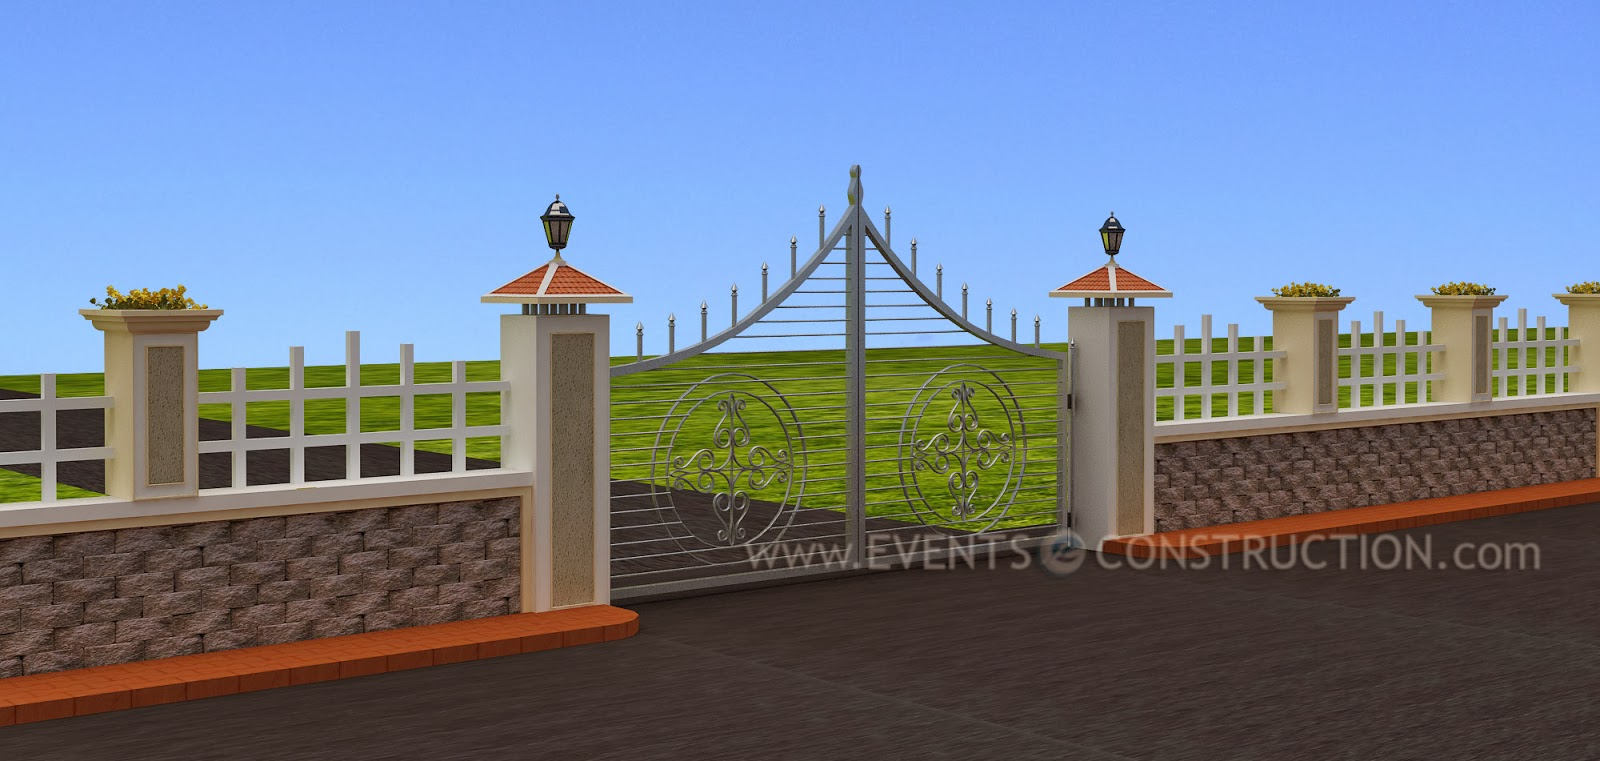 Design Of Compound Wall Gate : Compound wall design nicely designed and gate